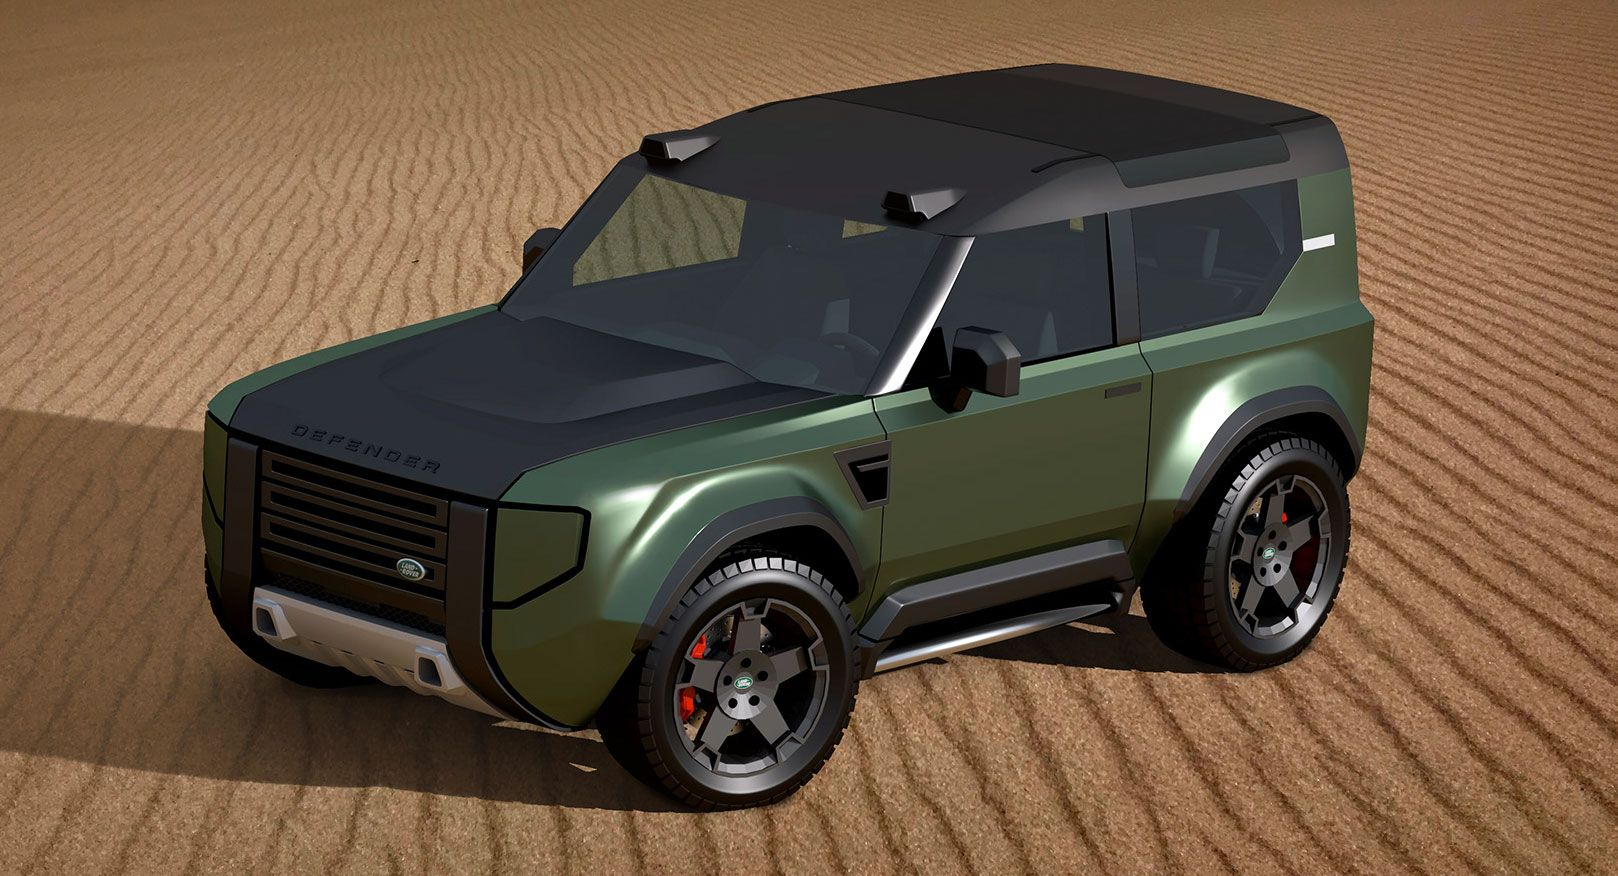 More Rumors On A Baby Land Rover Defender 80 As A Ford